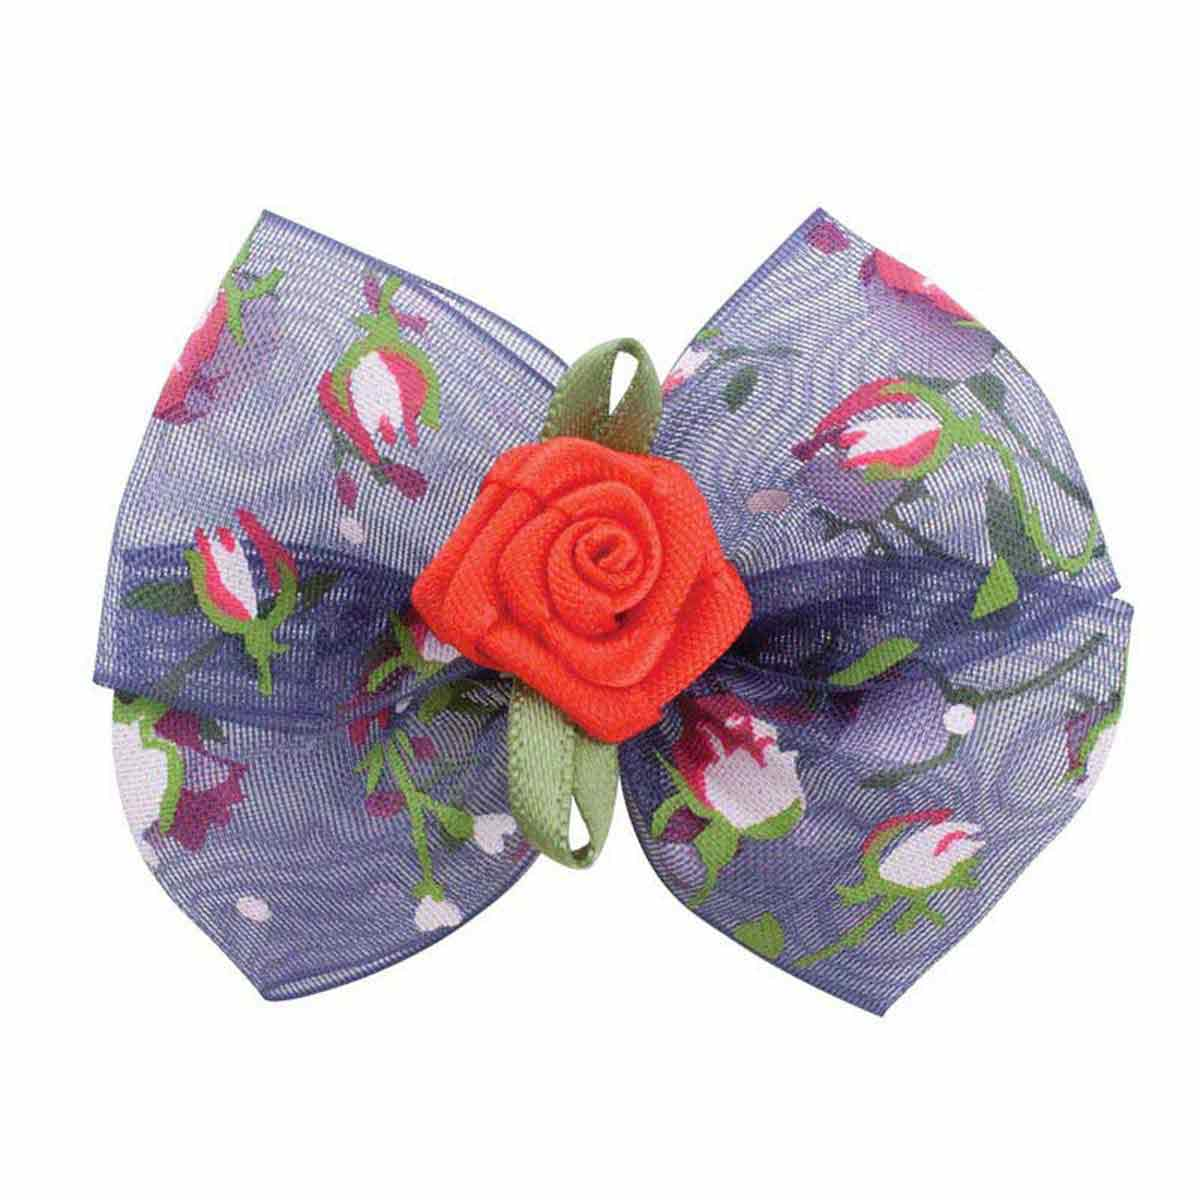 Fancy Finishes Floral Print Organza Bows With Rose Center - 24 Count Bag